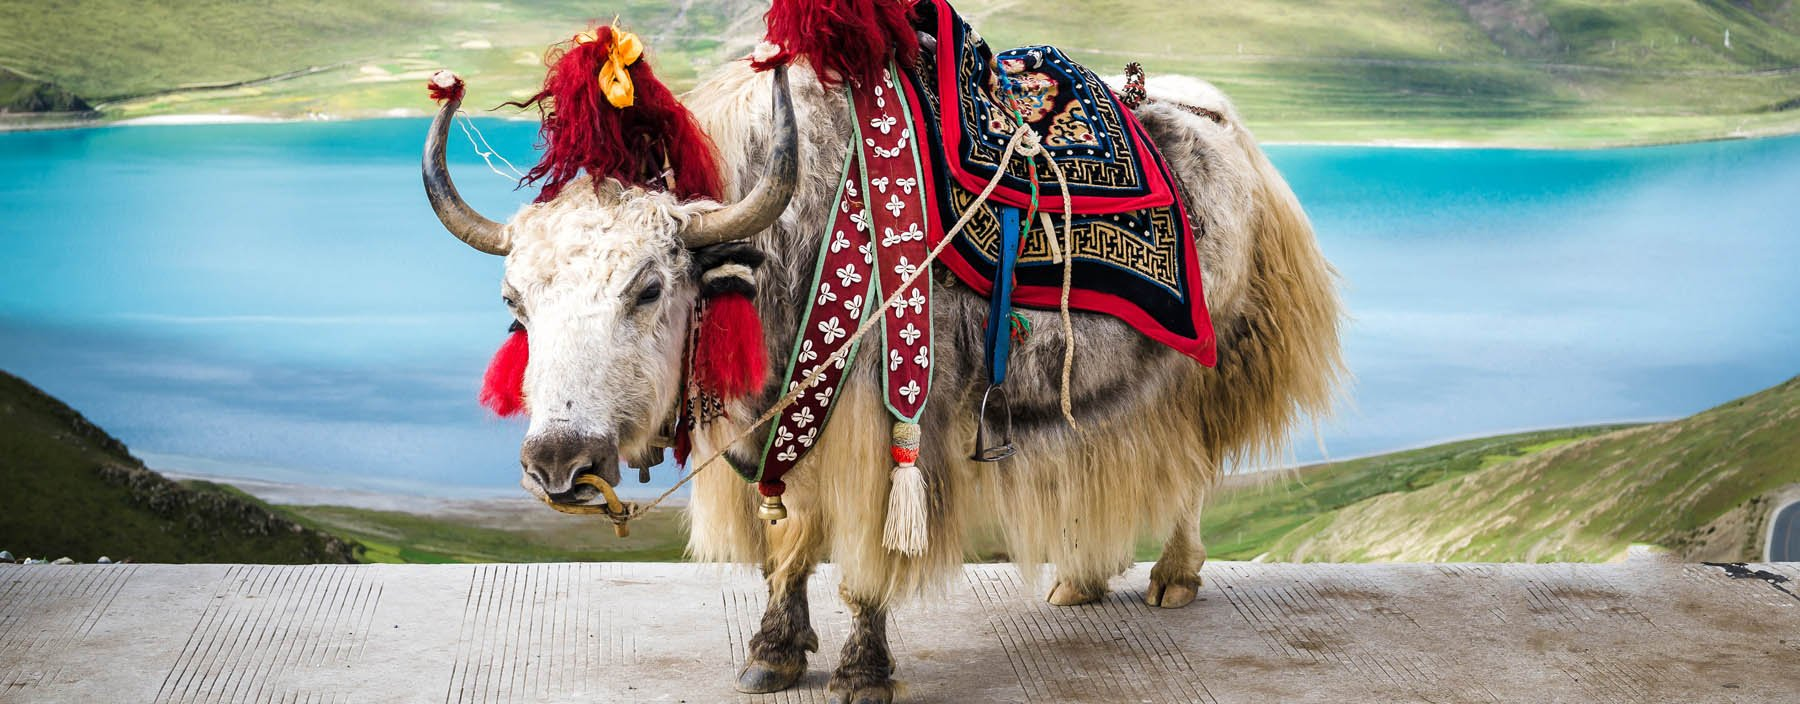 cn, tibet, decorated white tibetan yak at the yamdrok lake in tibet  (2).jpg